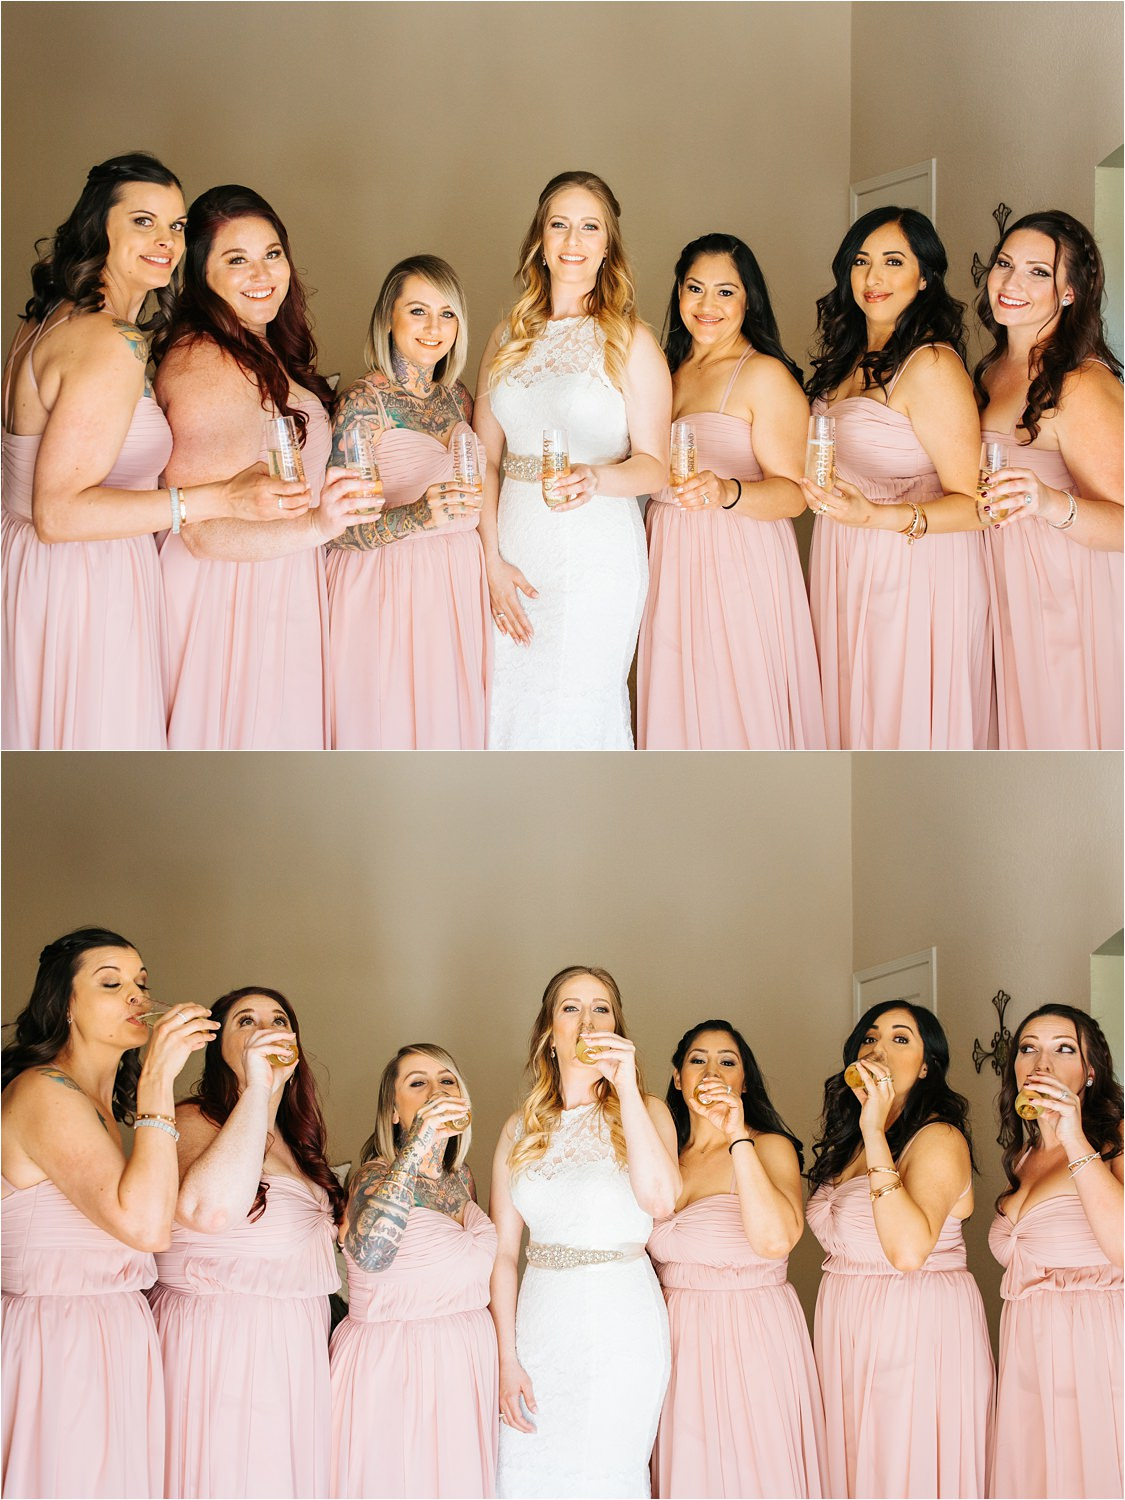 Celebratory drink with the bride and her bridesmaids - https://brittneyhannonphotography.com